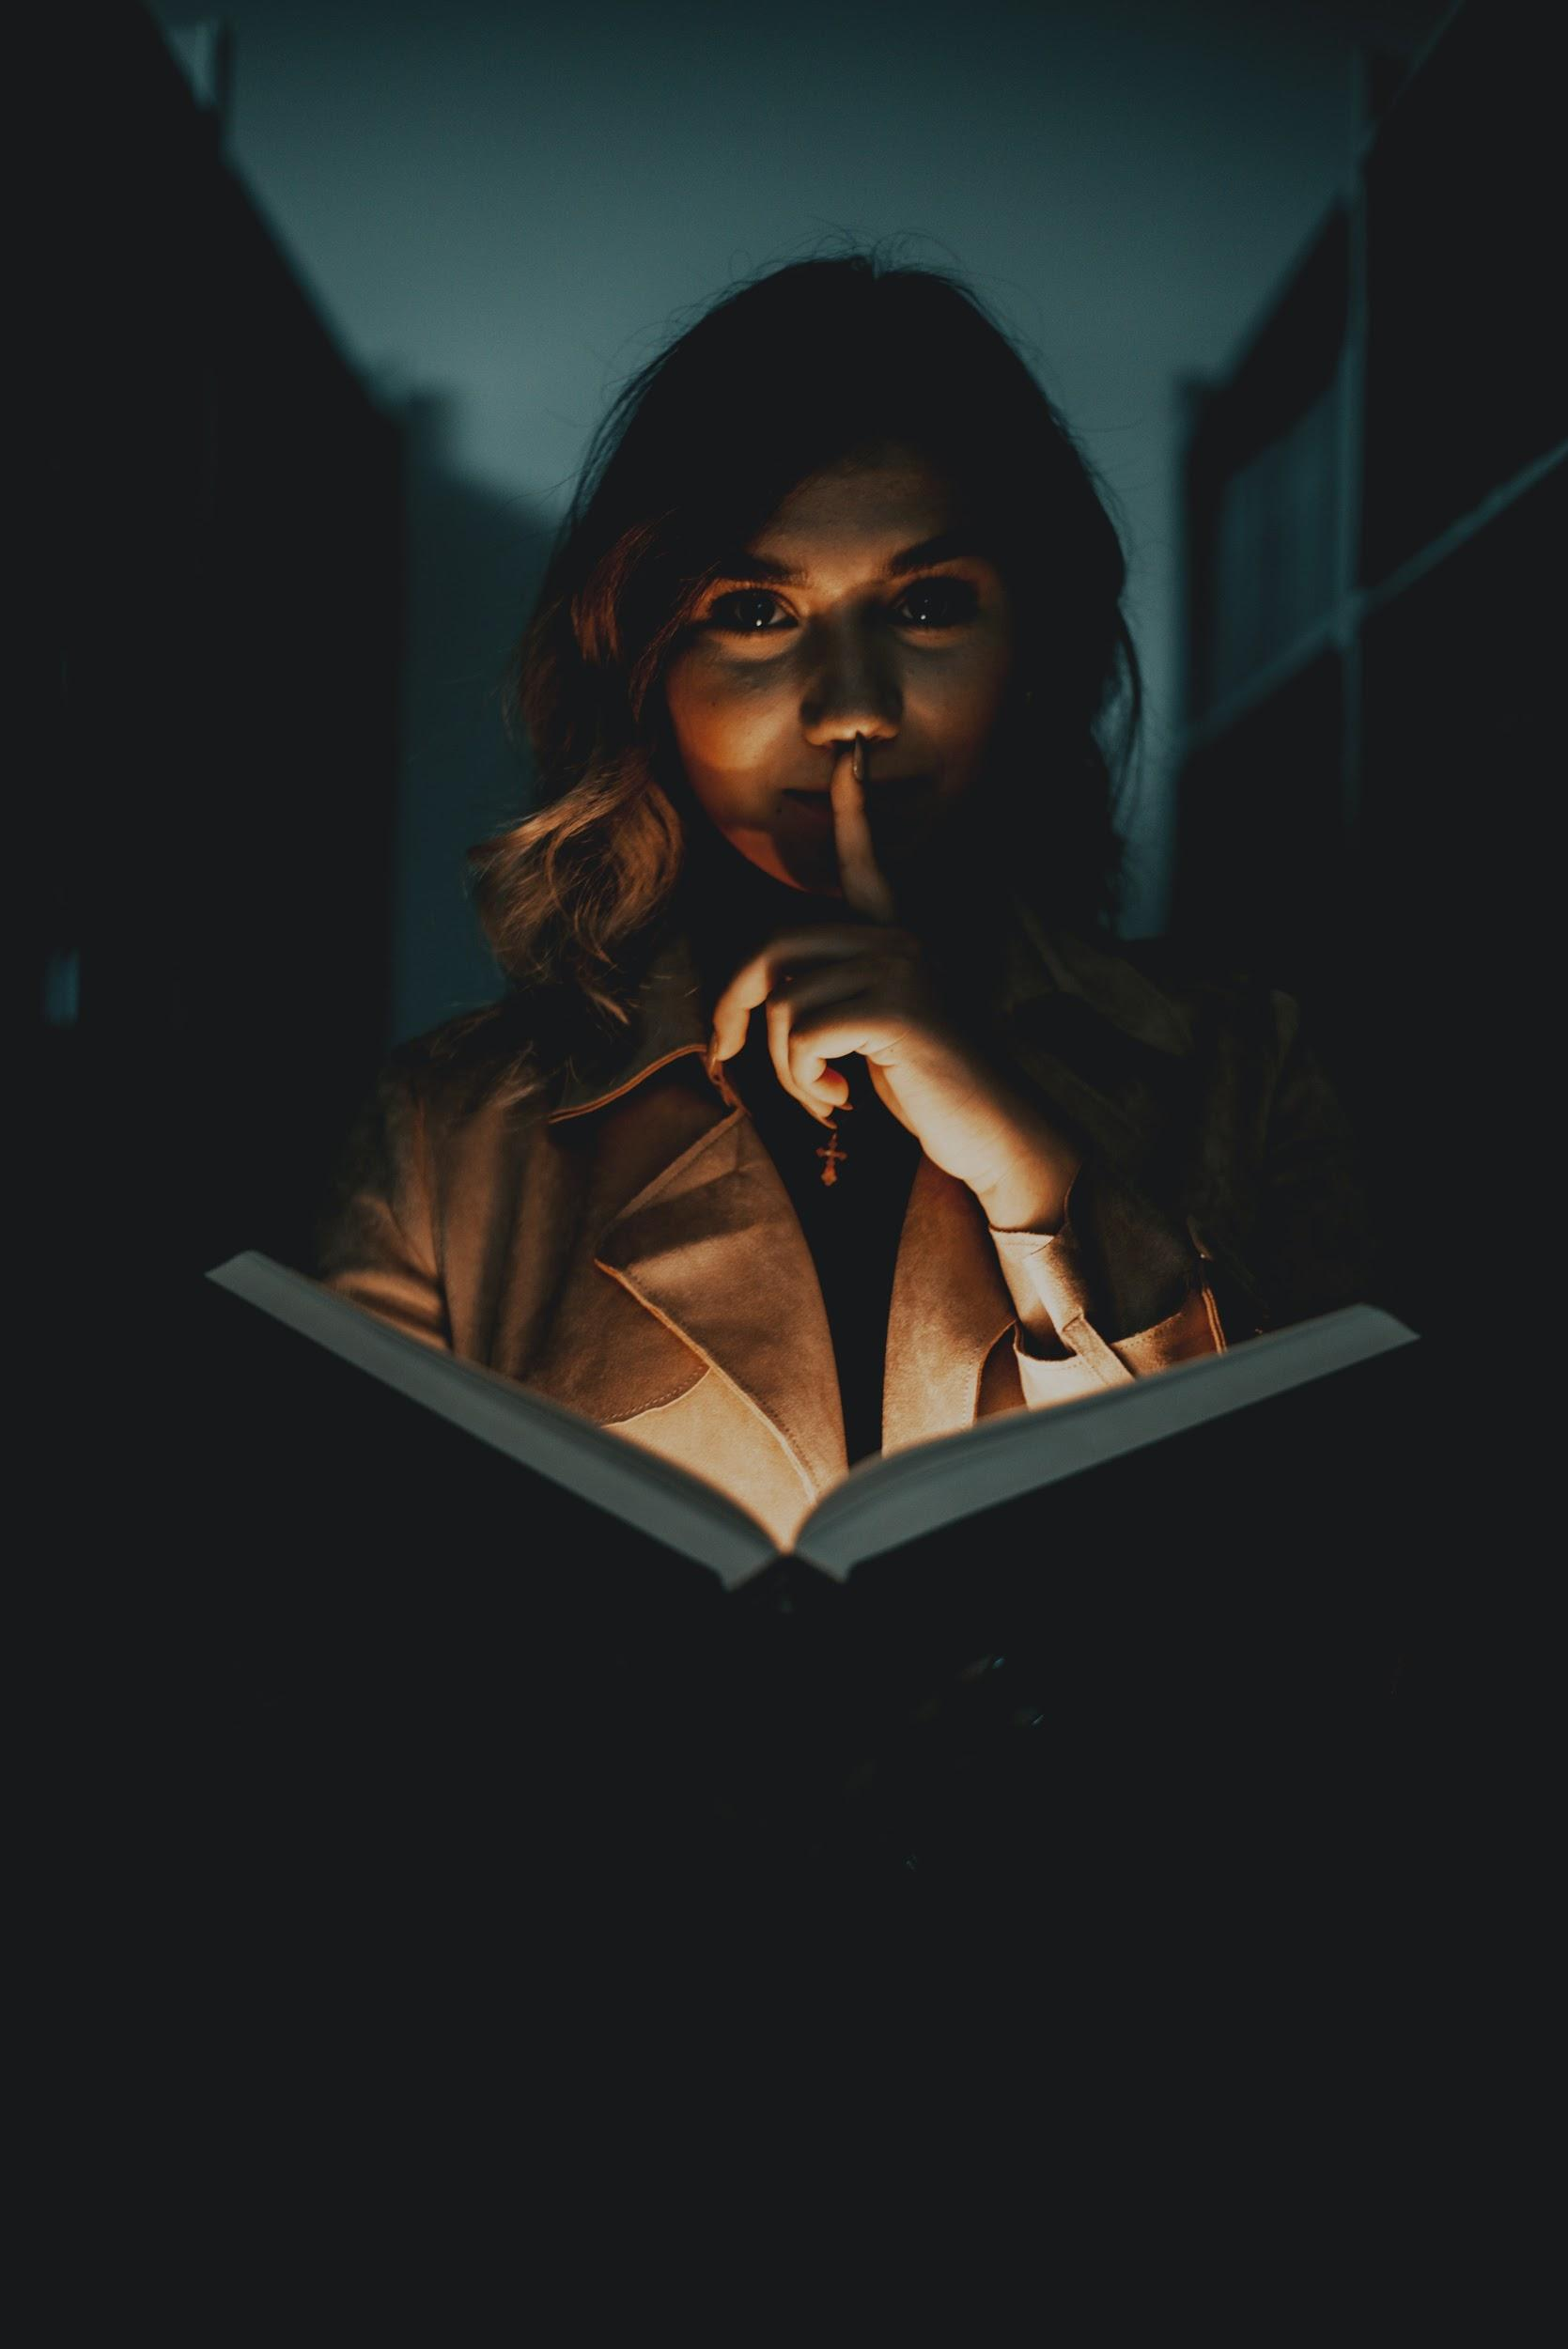 Girl with shining book in a dark library